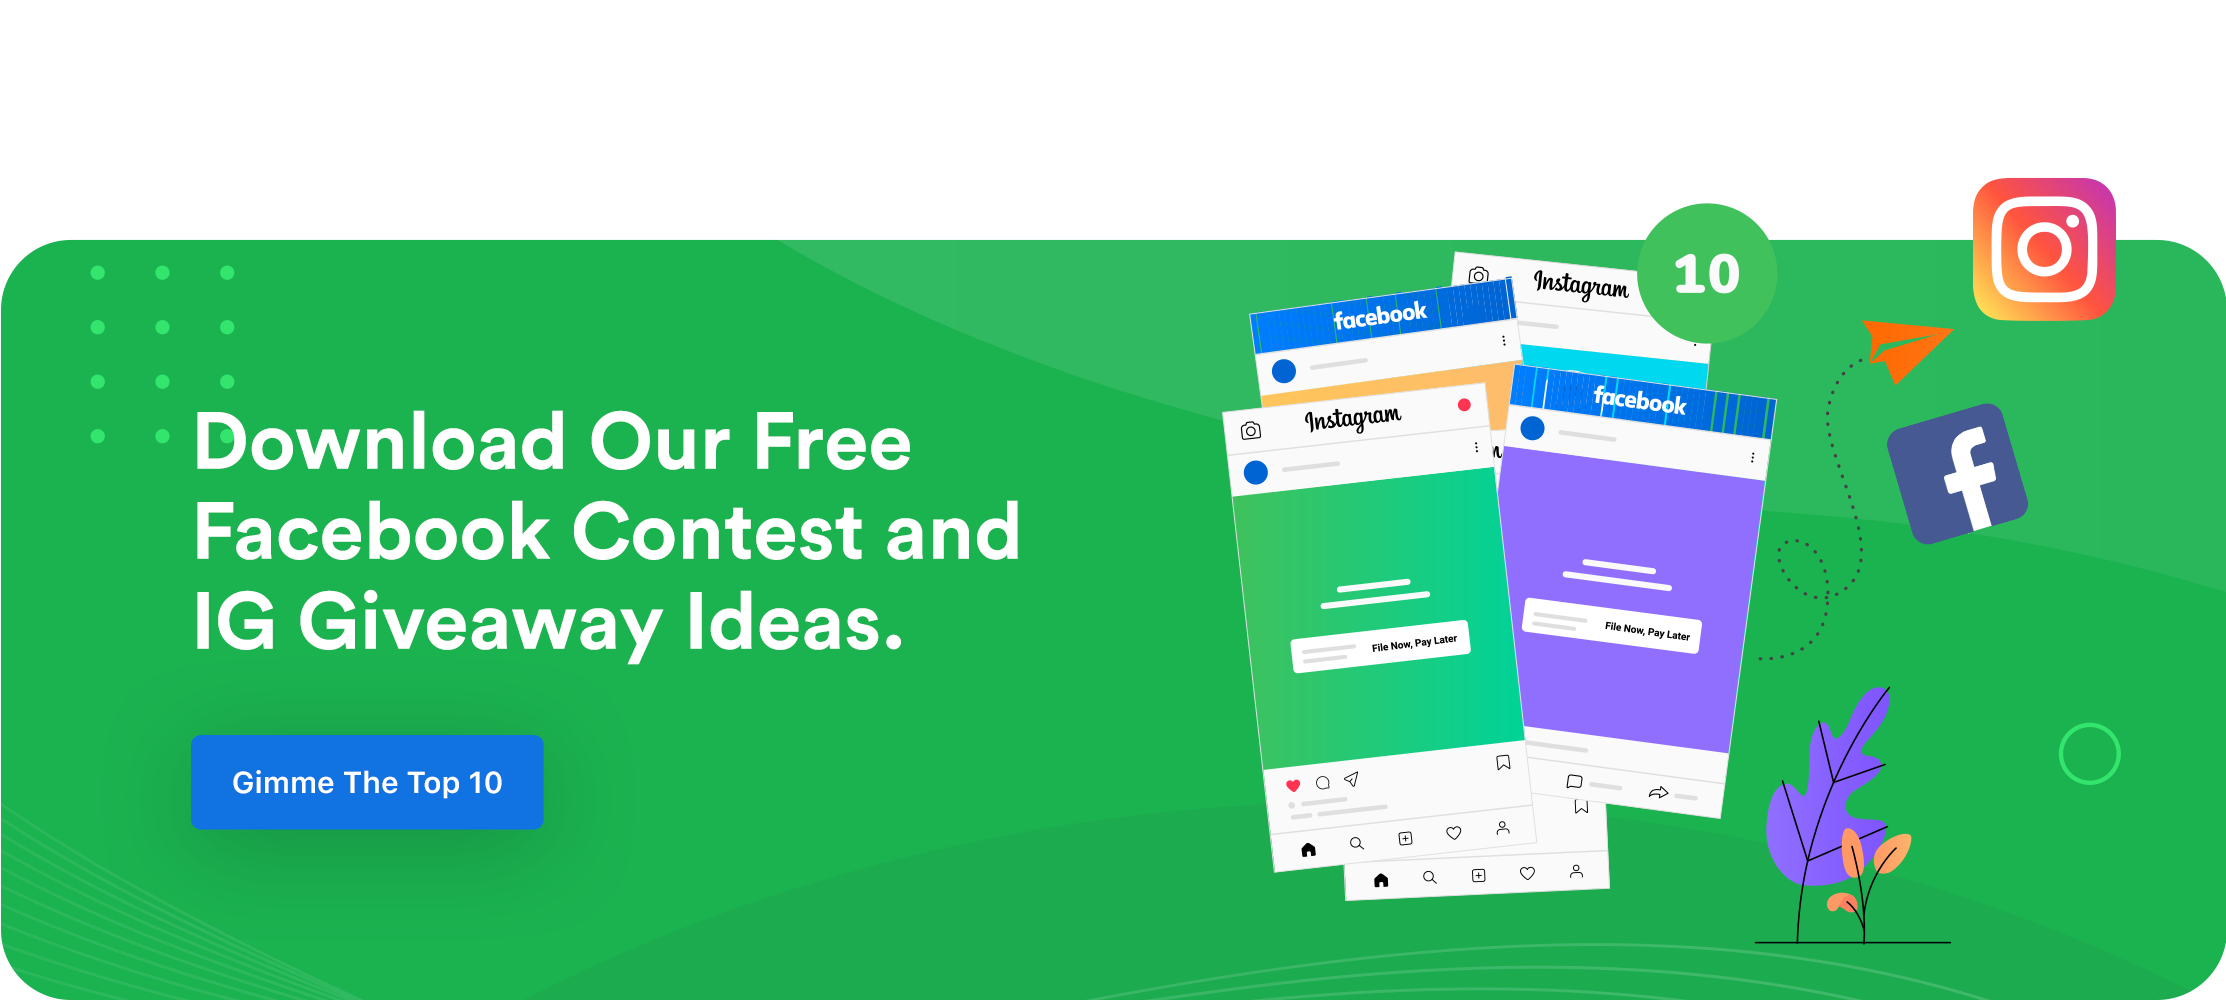 Tax Office Facebook Contest and IG Giveaway Ideas